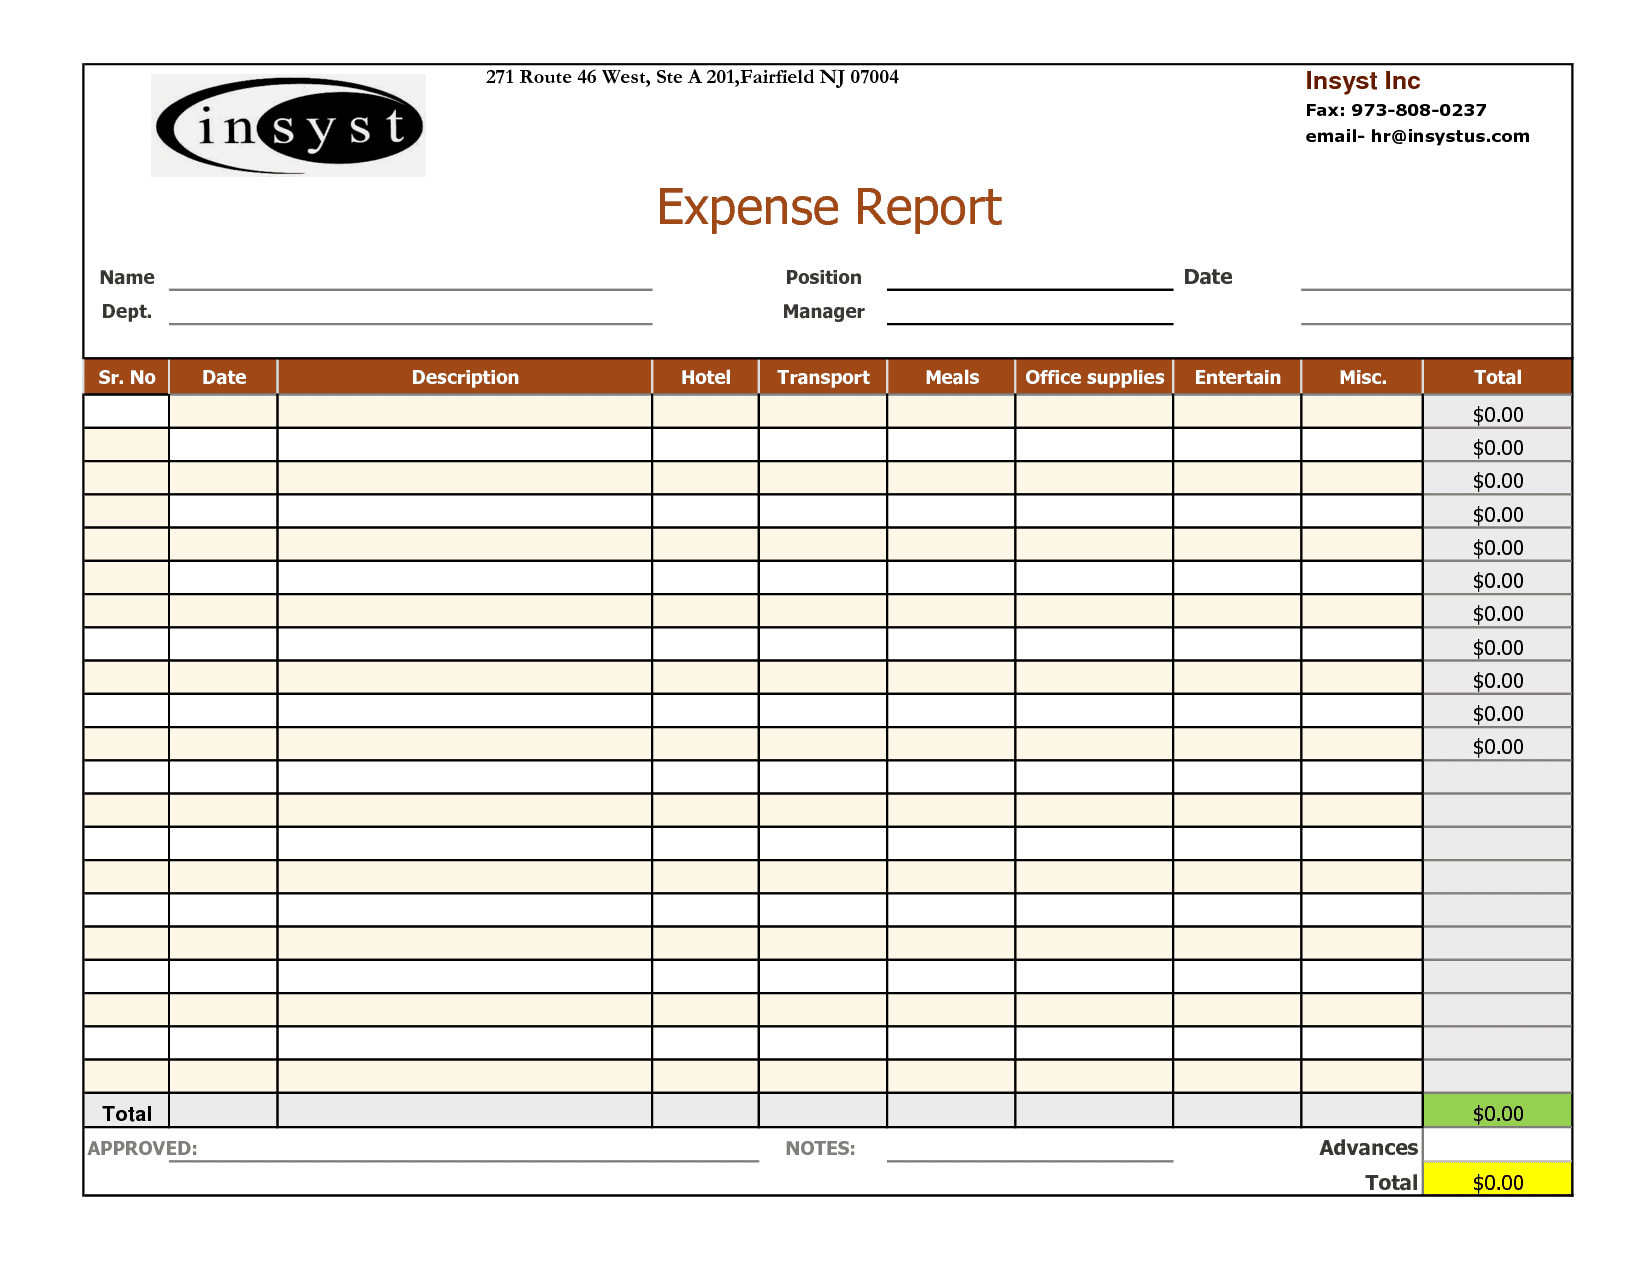 Expense Report Template Google Docs 1